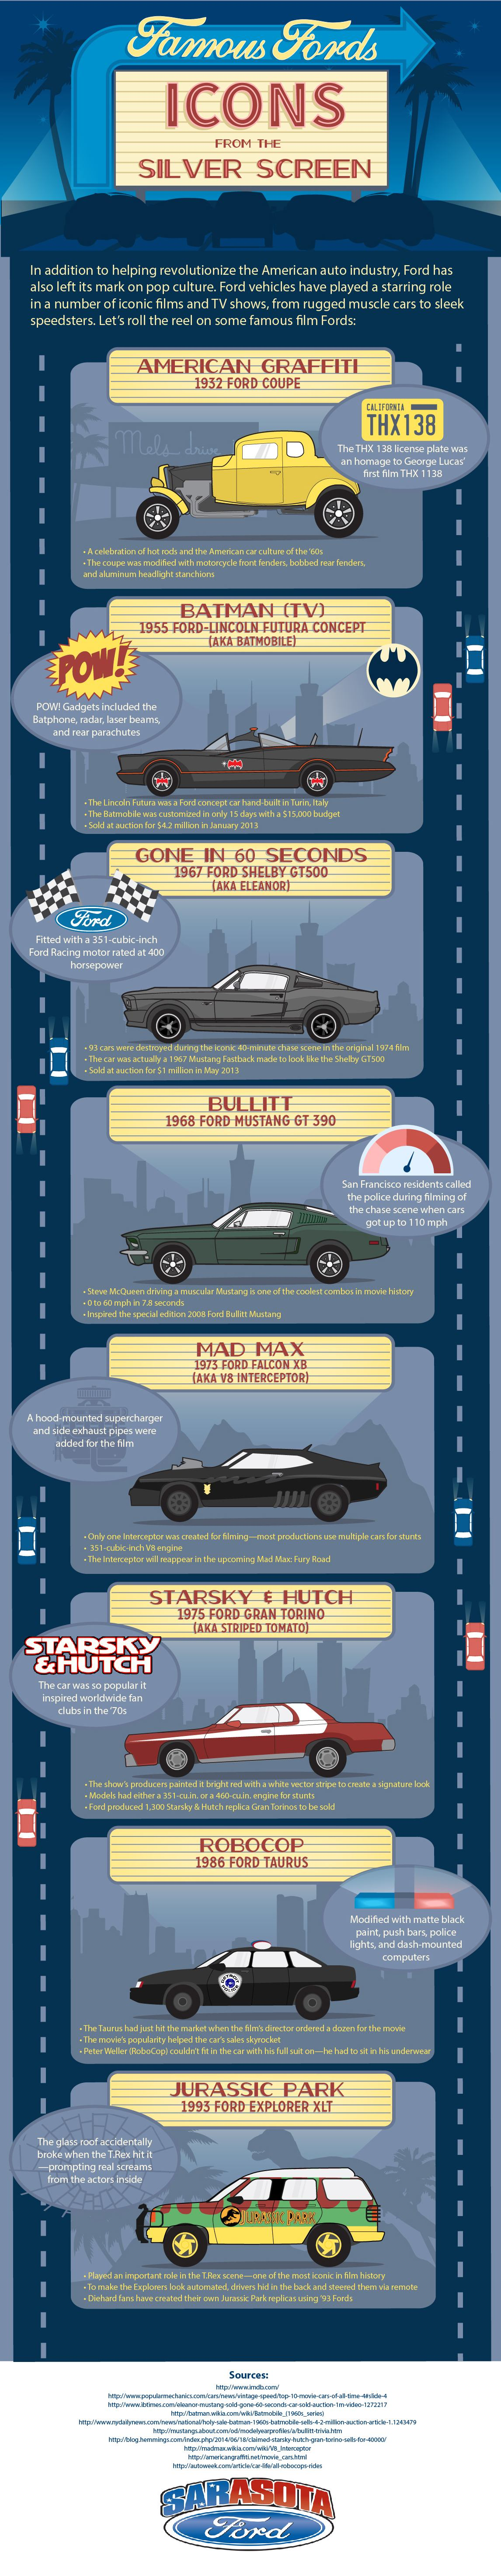 Famous-Fords-Sarasota-Ford-Infographic